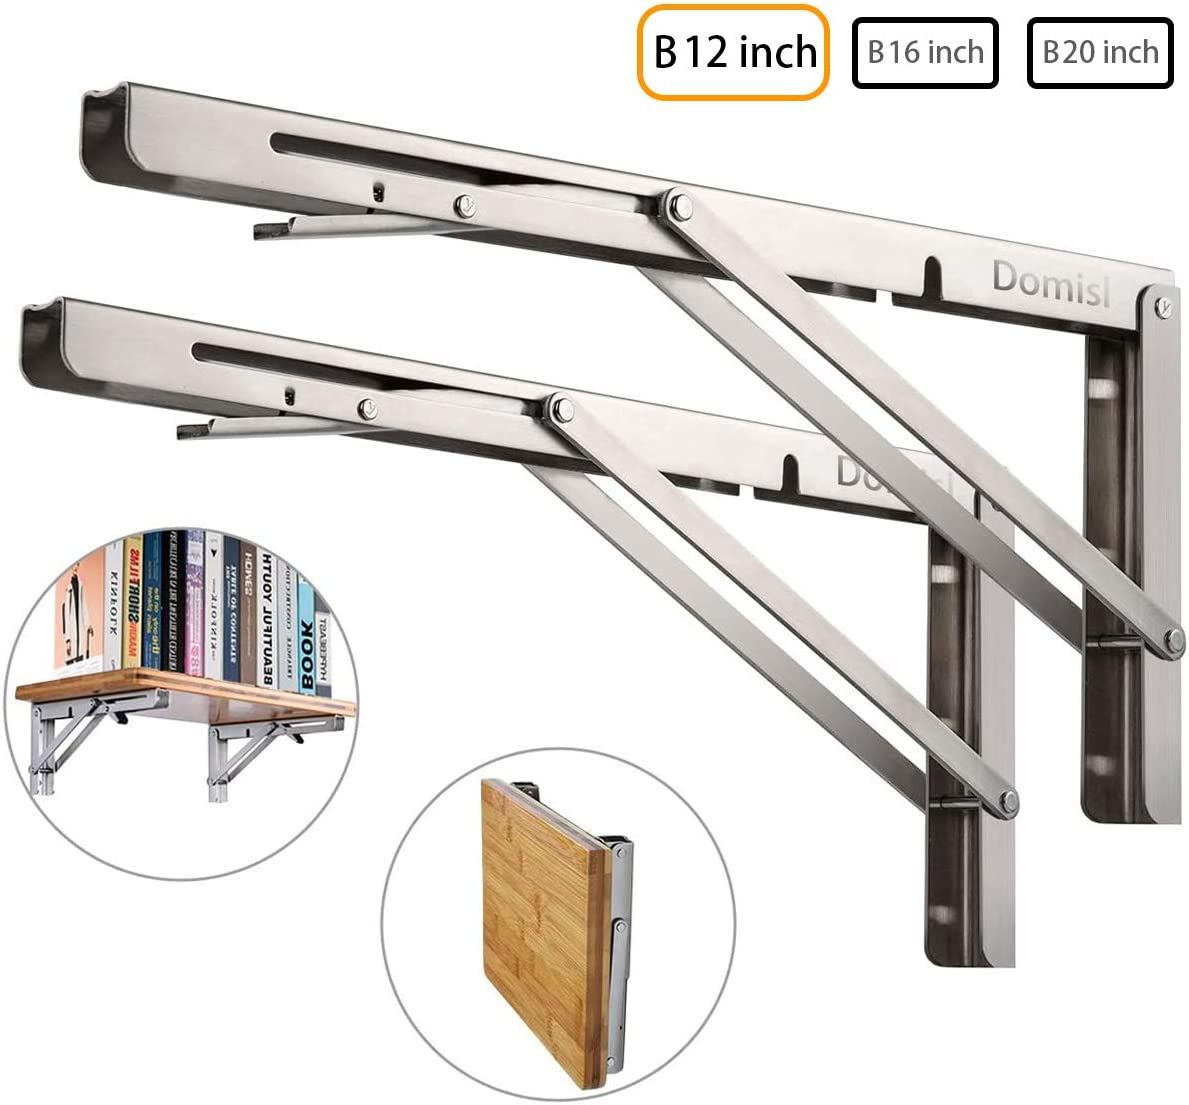 Folding Shelf Brackets Specially Made 2PCS, Heavy Duty Stainless Steel L-Shaped Bracket, DIY Shelves for Table Desk Bench Wall Mounted TV Bracket Max Load 250lb Space Saving (B 12 Inch)